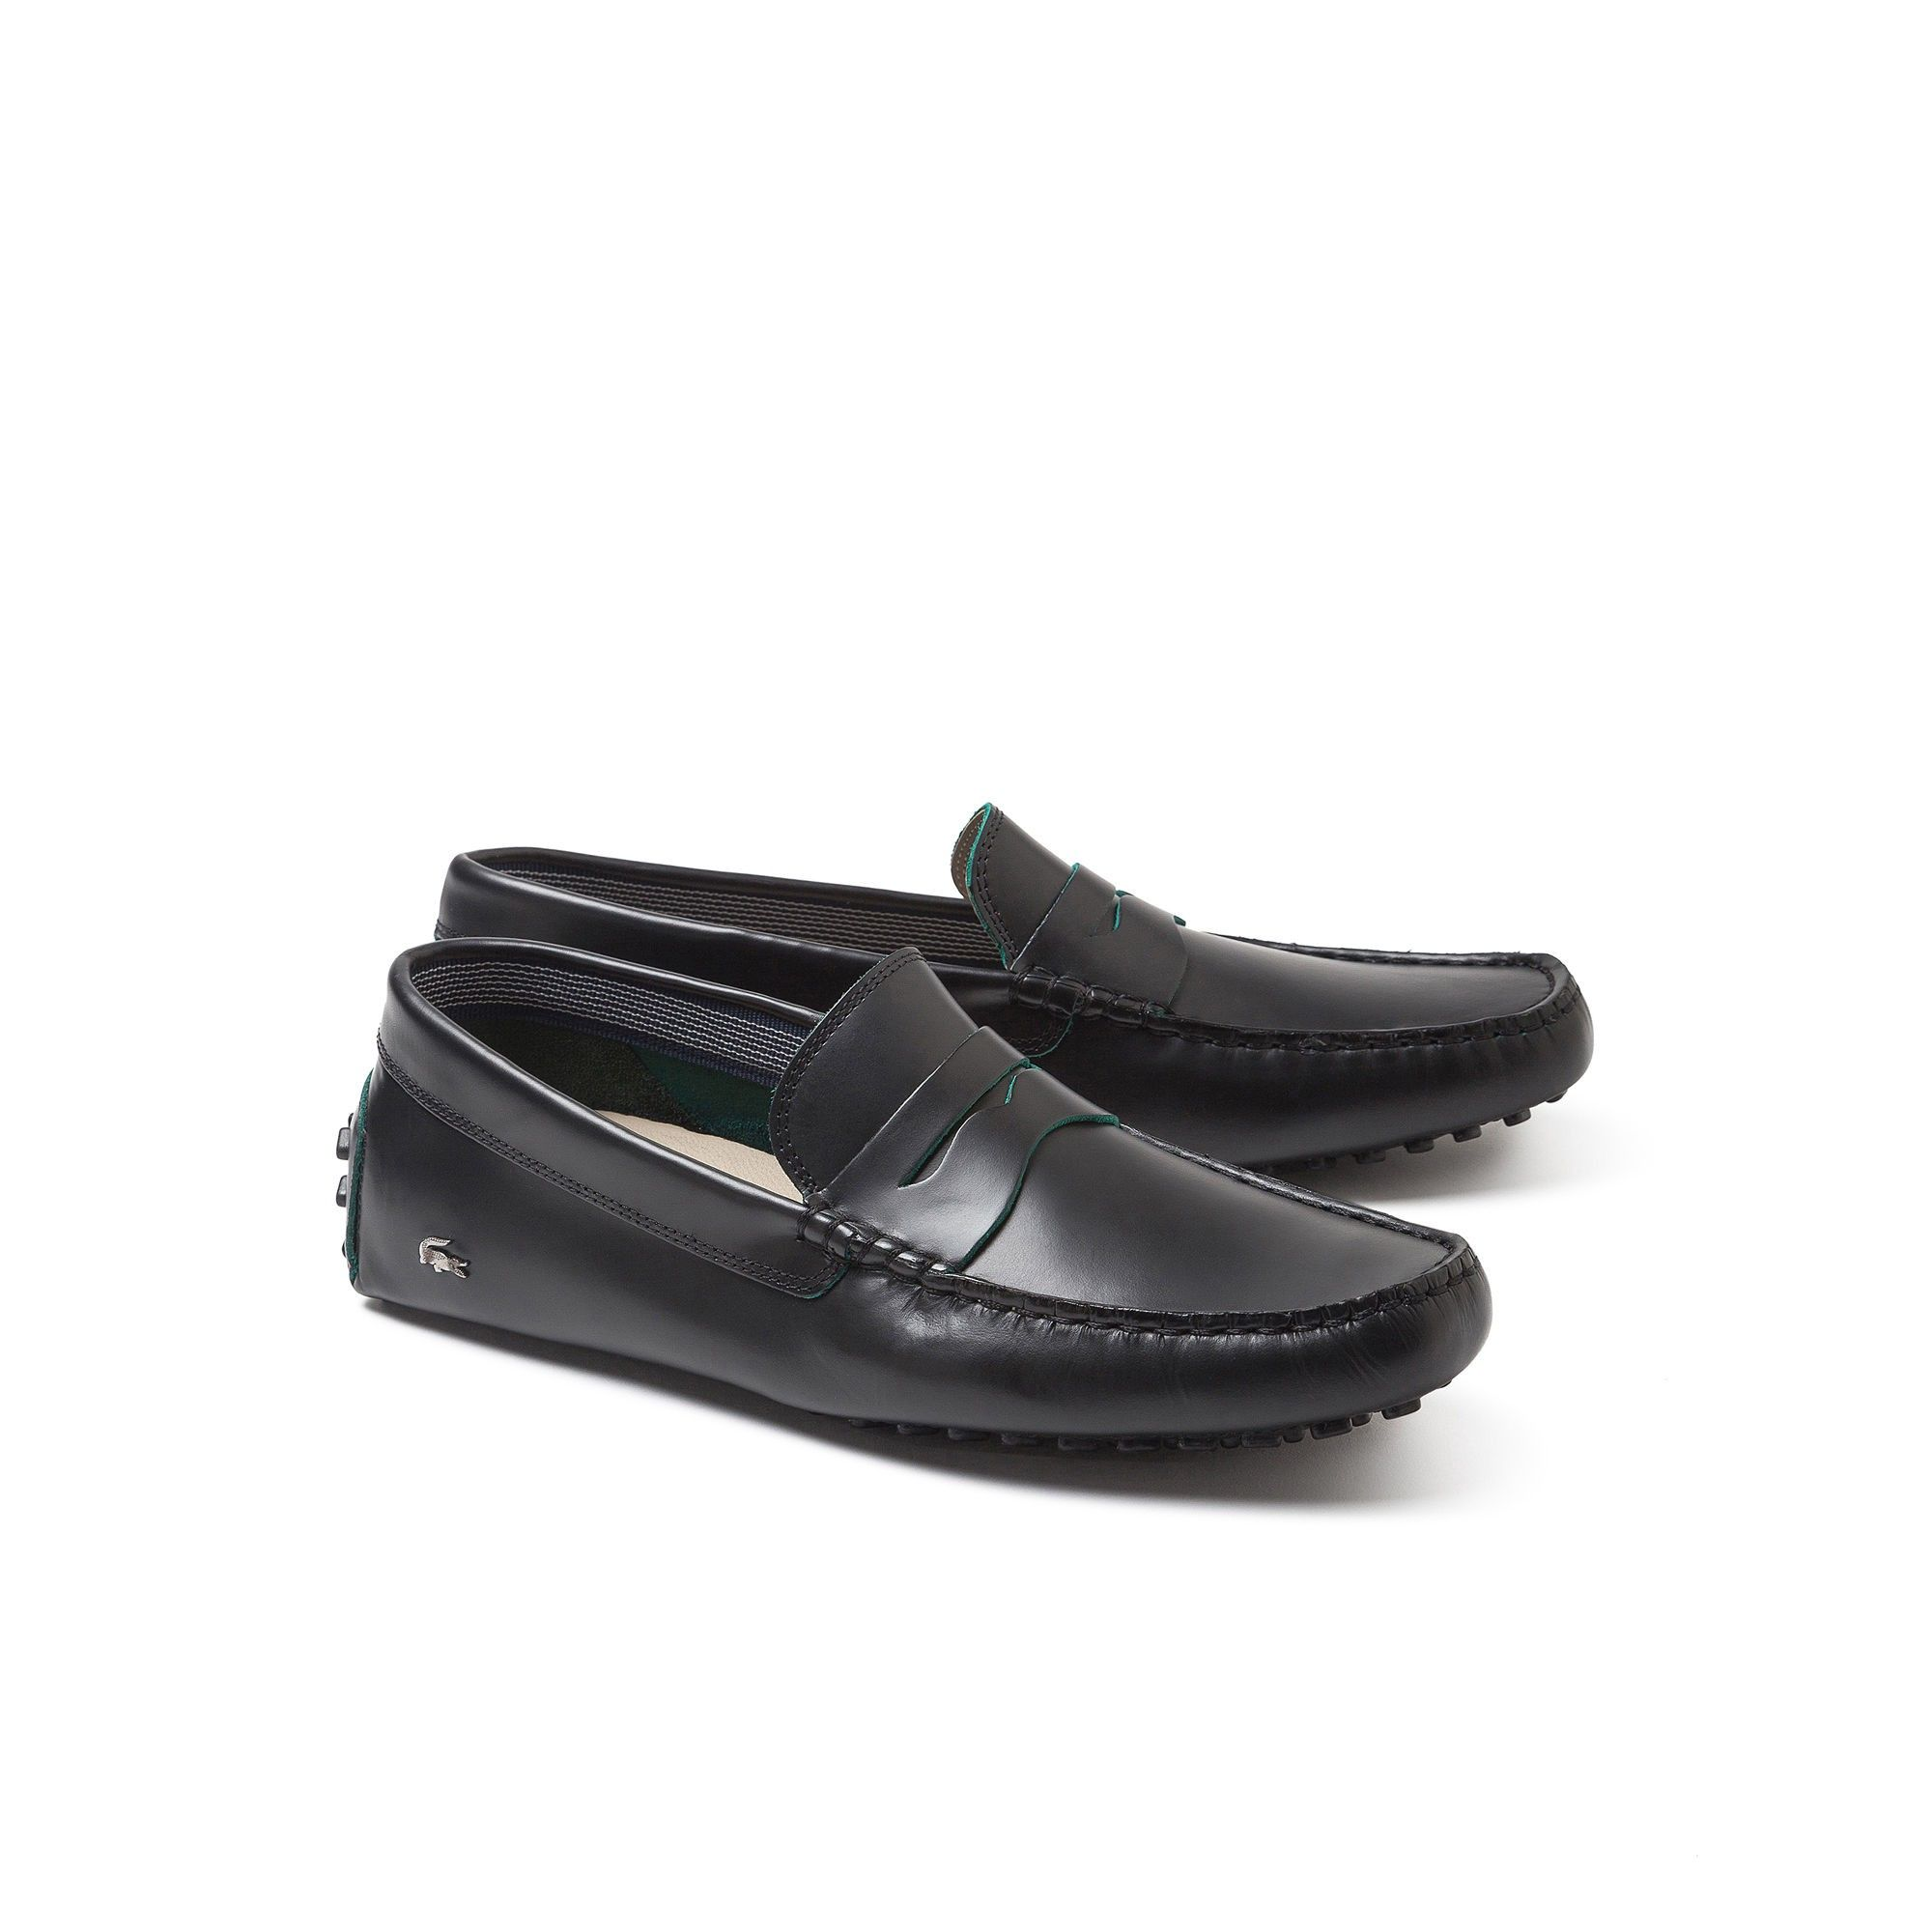 c7bbeda81581be LACOSTE Men s Concours Loafer - black.  lacoste  shoes  all ...